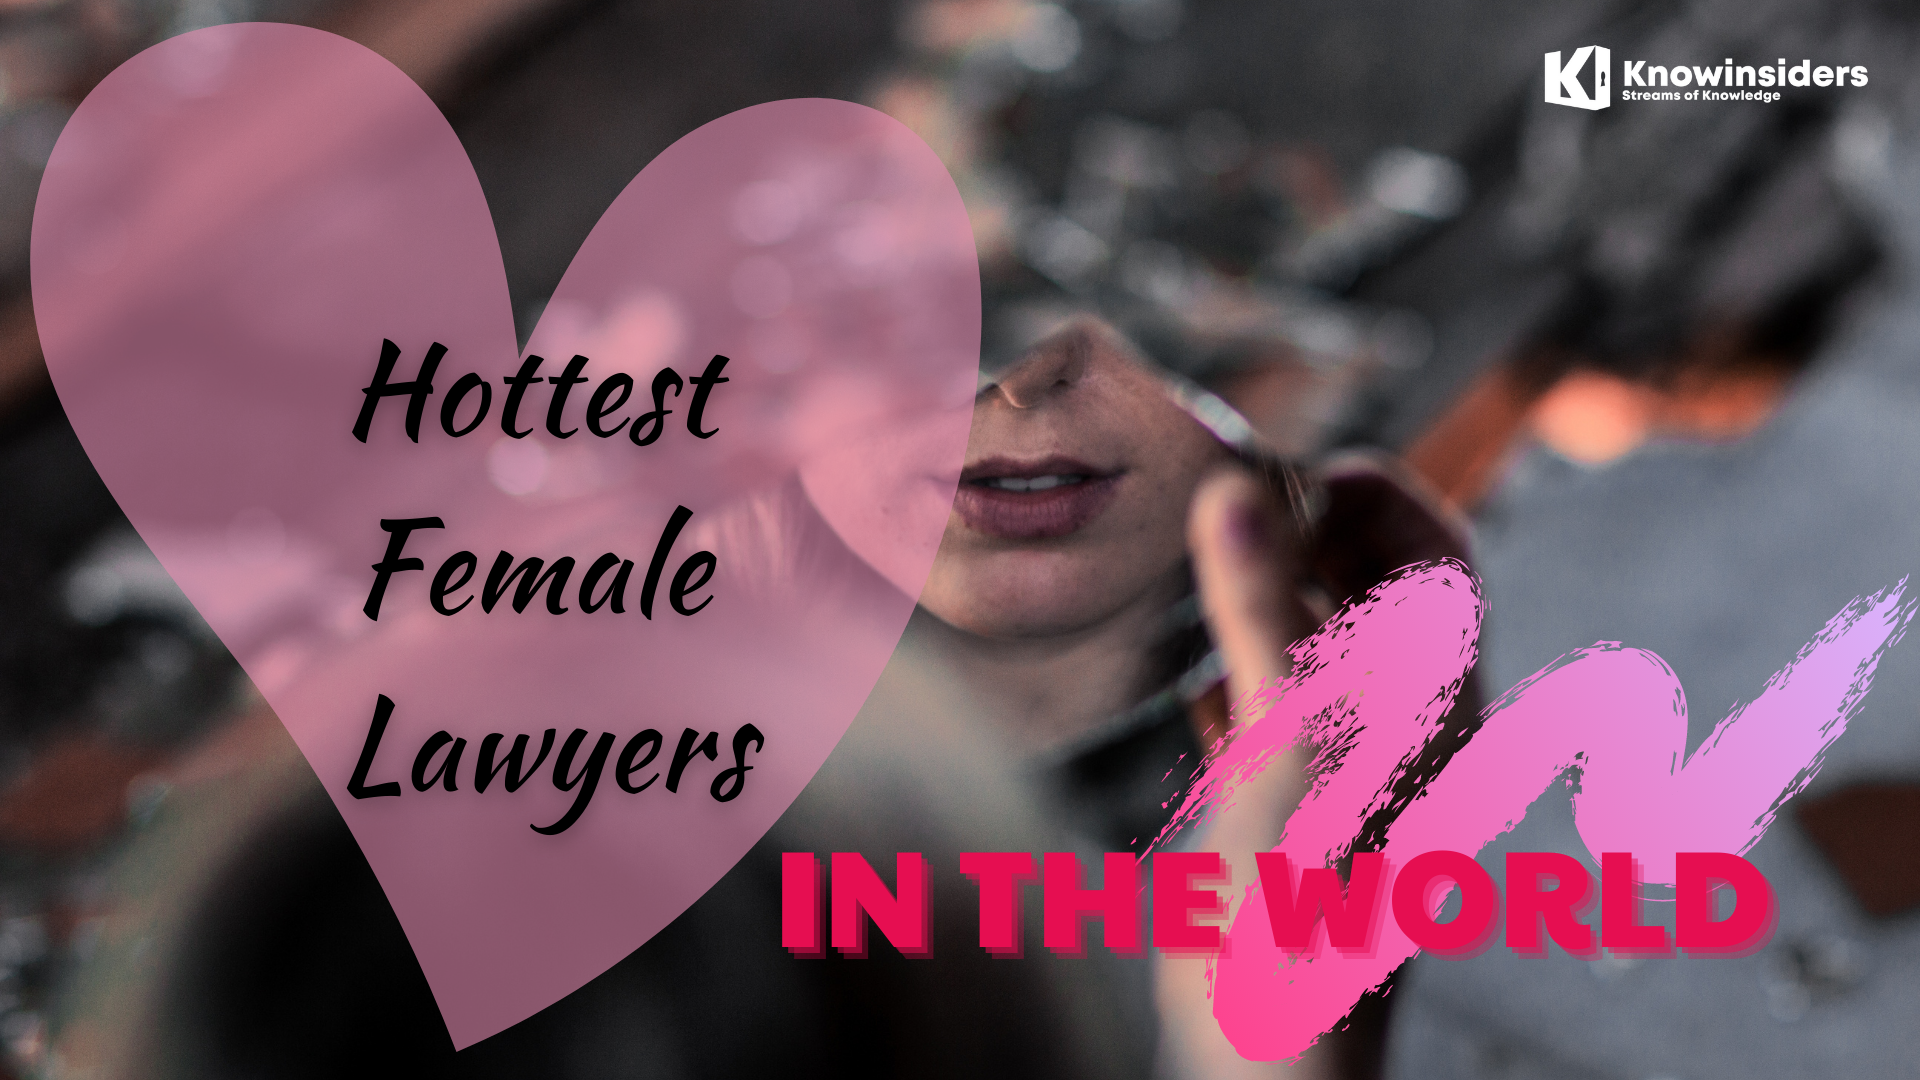 Hottest Female Lawyers In The World. Photo: knowinsiders.